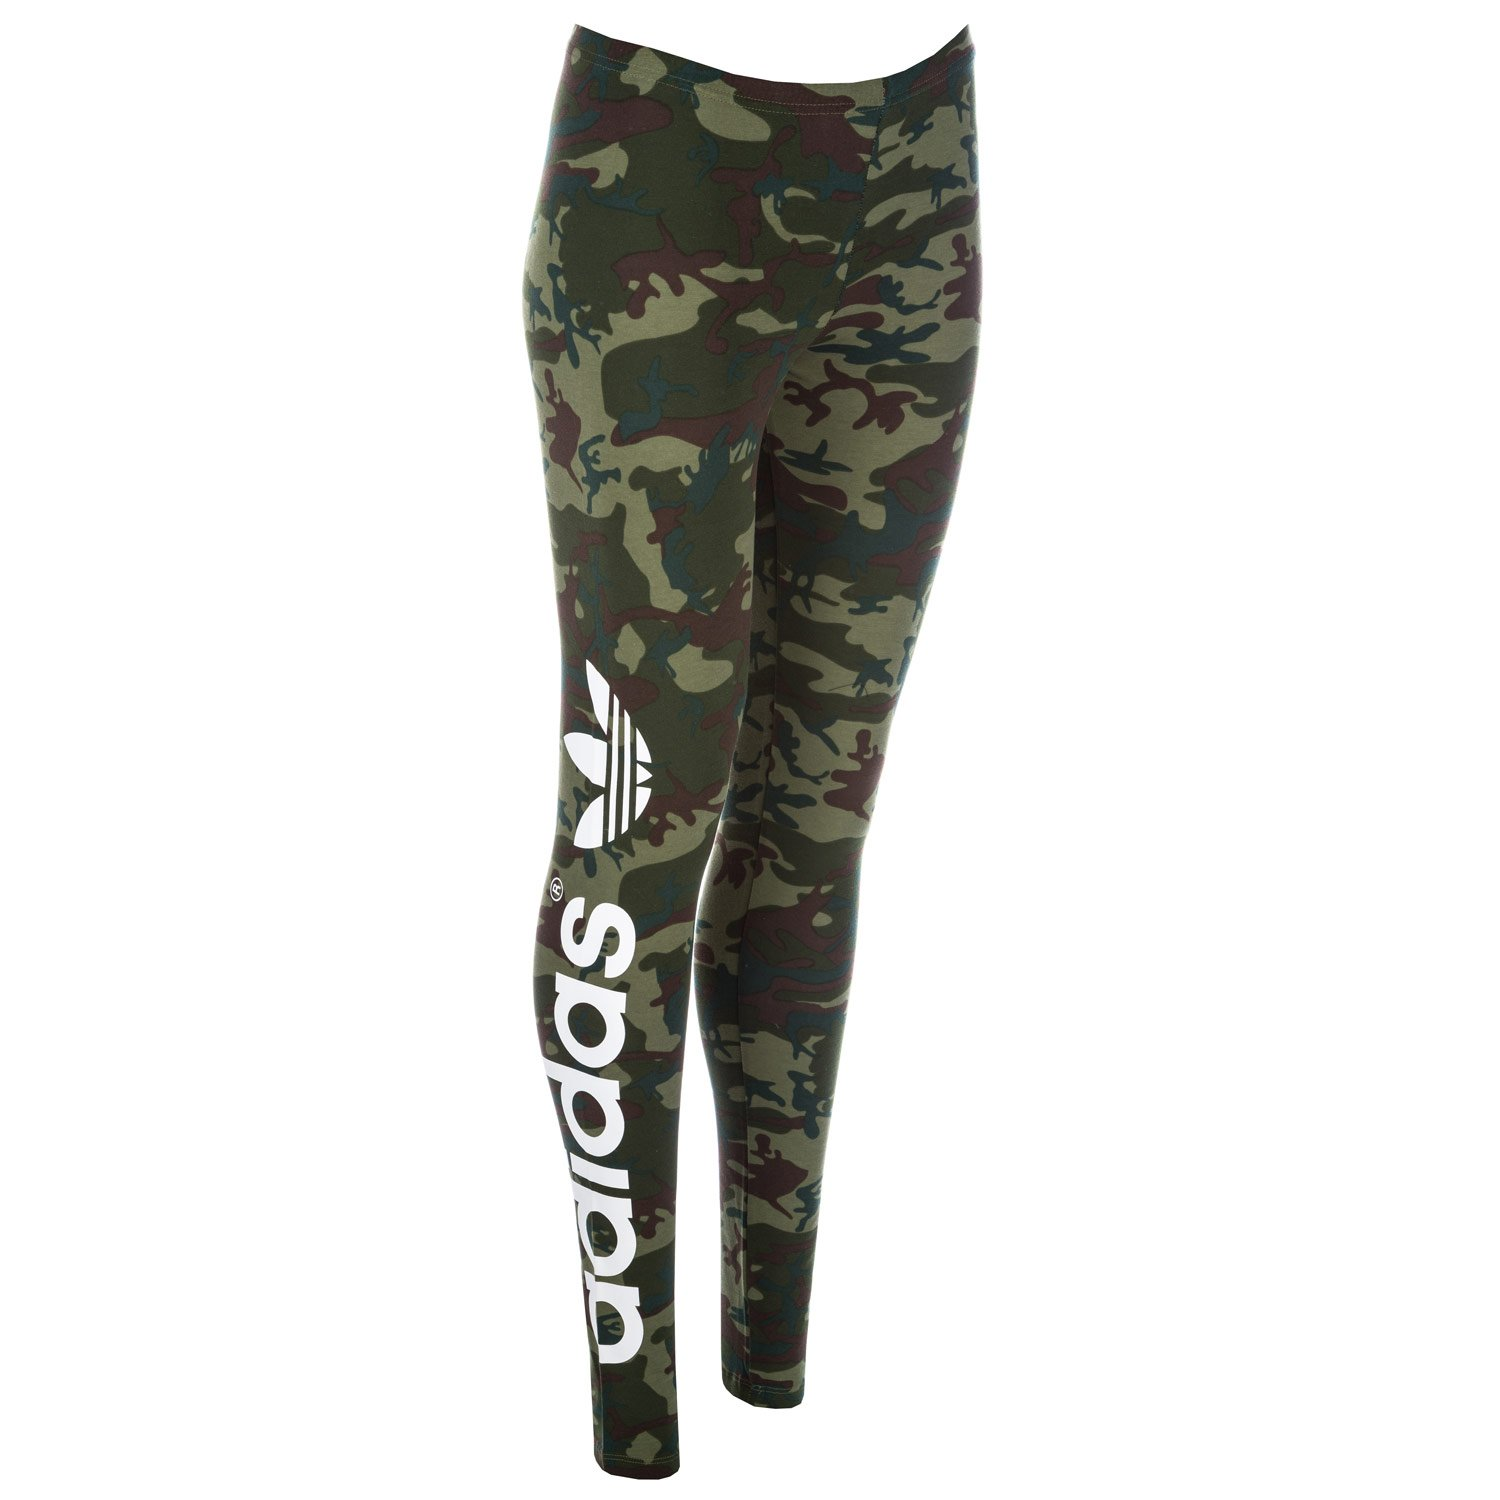 1debf94e8d13b adidas Originals Womens Womens Camo Basketball Leggings in Multi Colour -  4: adidas Originals: Amazon.co.uk: Clothing